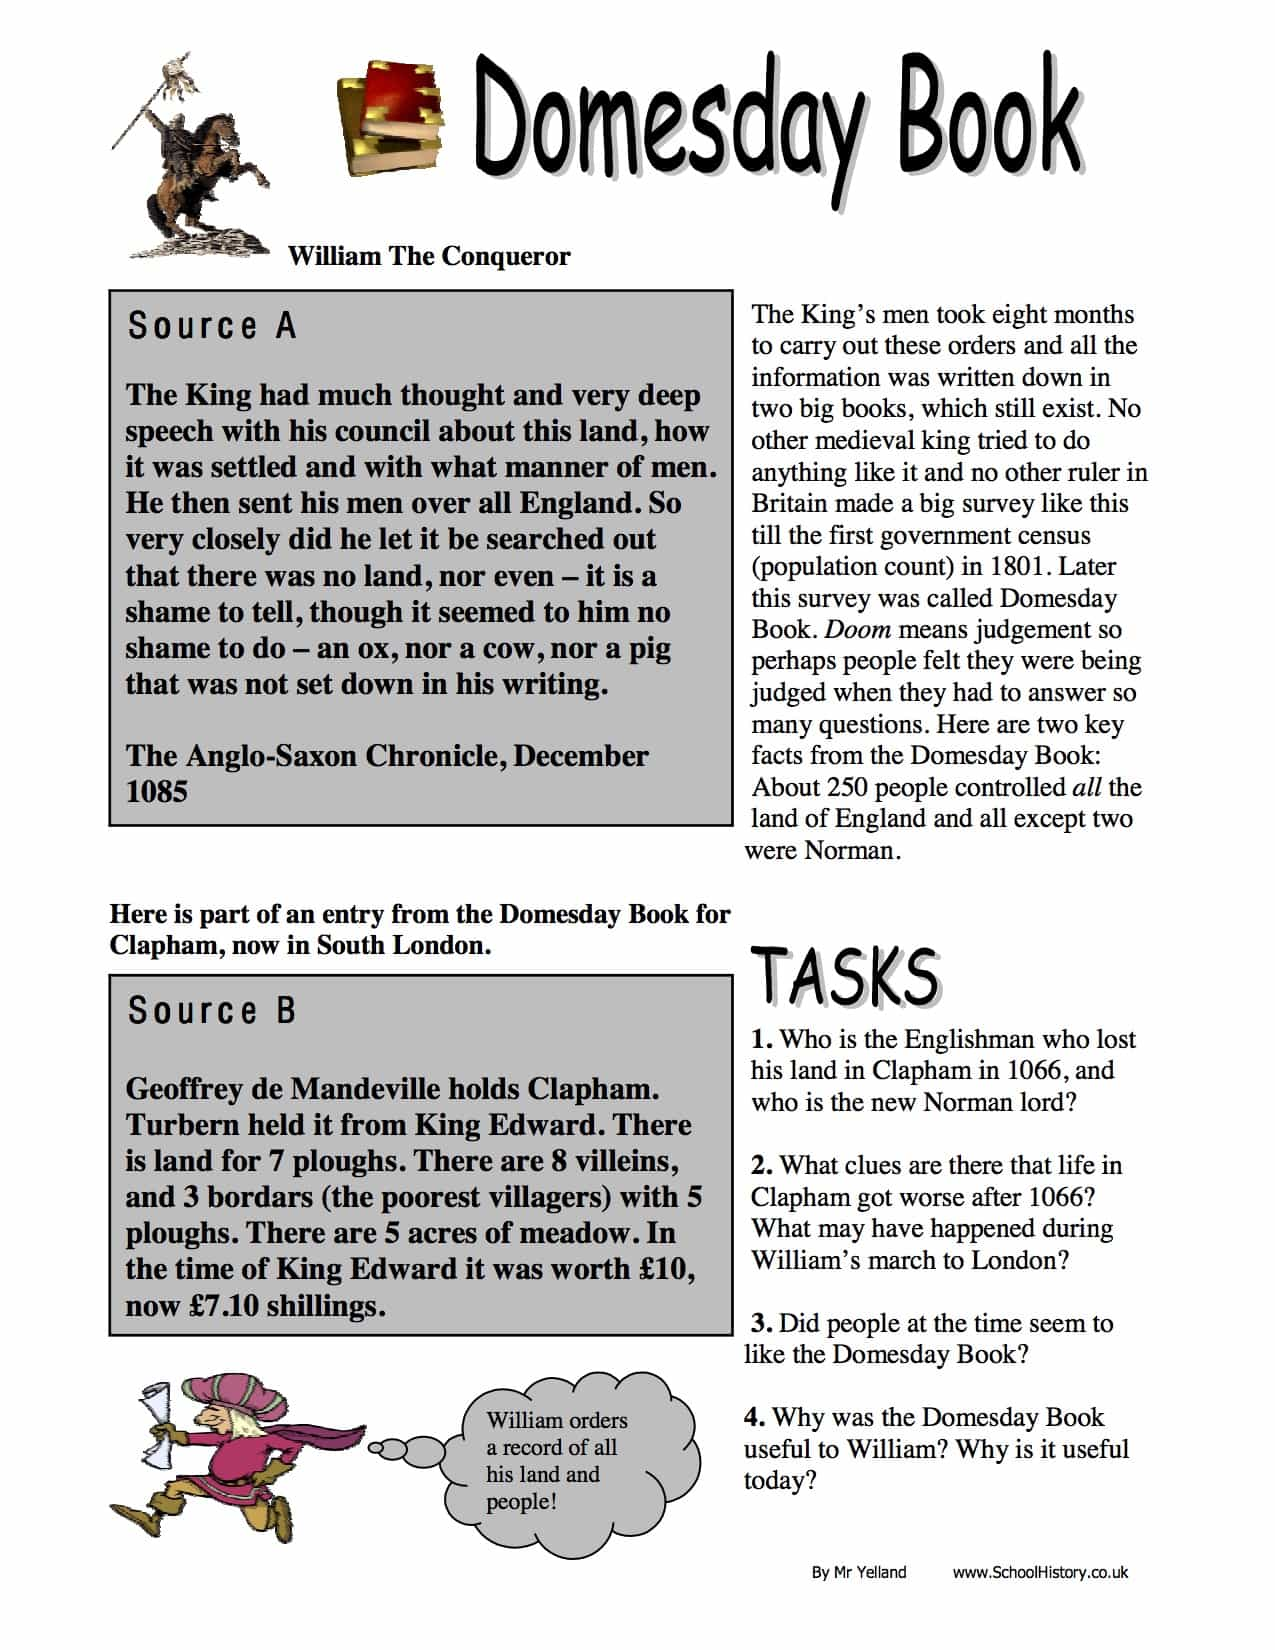 The Domesday Book Information Amp Facts Worksheet